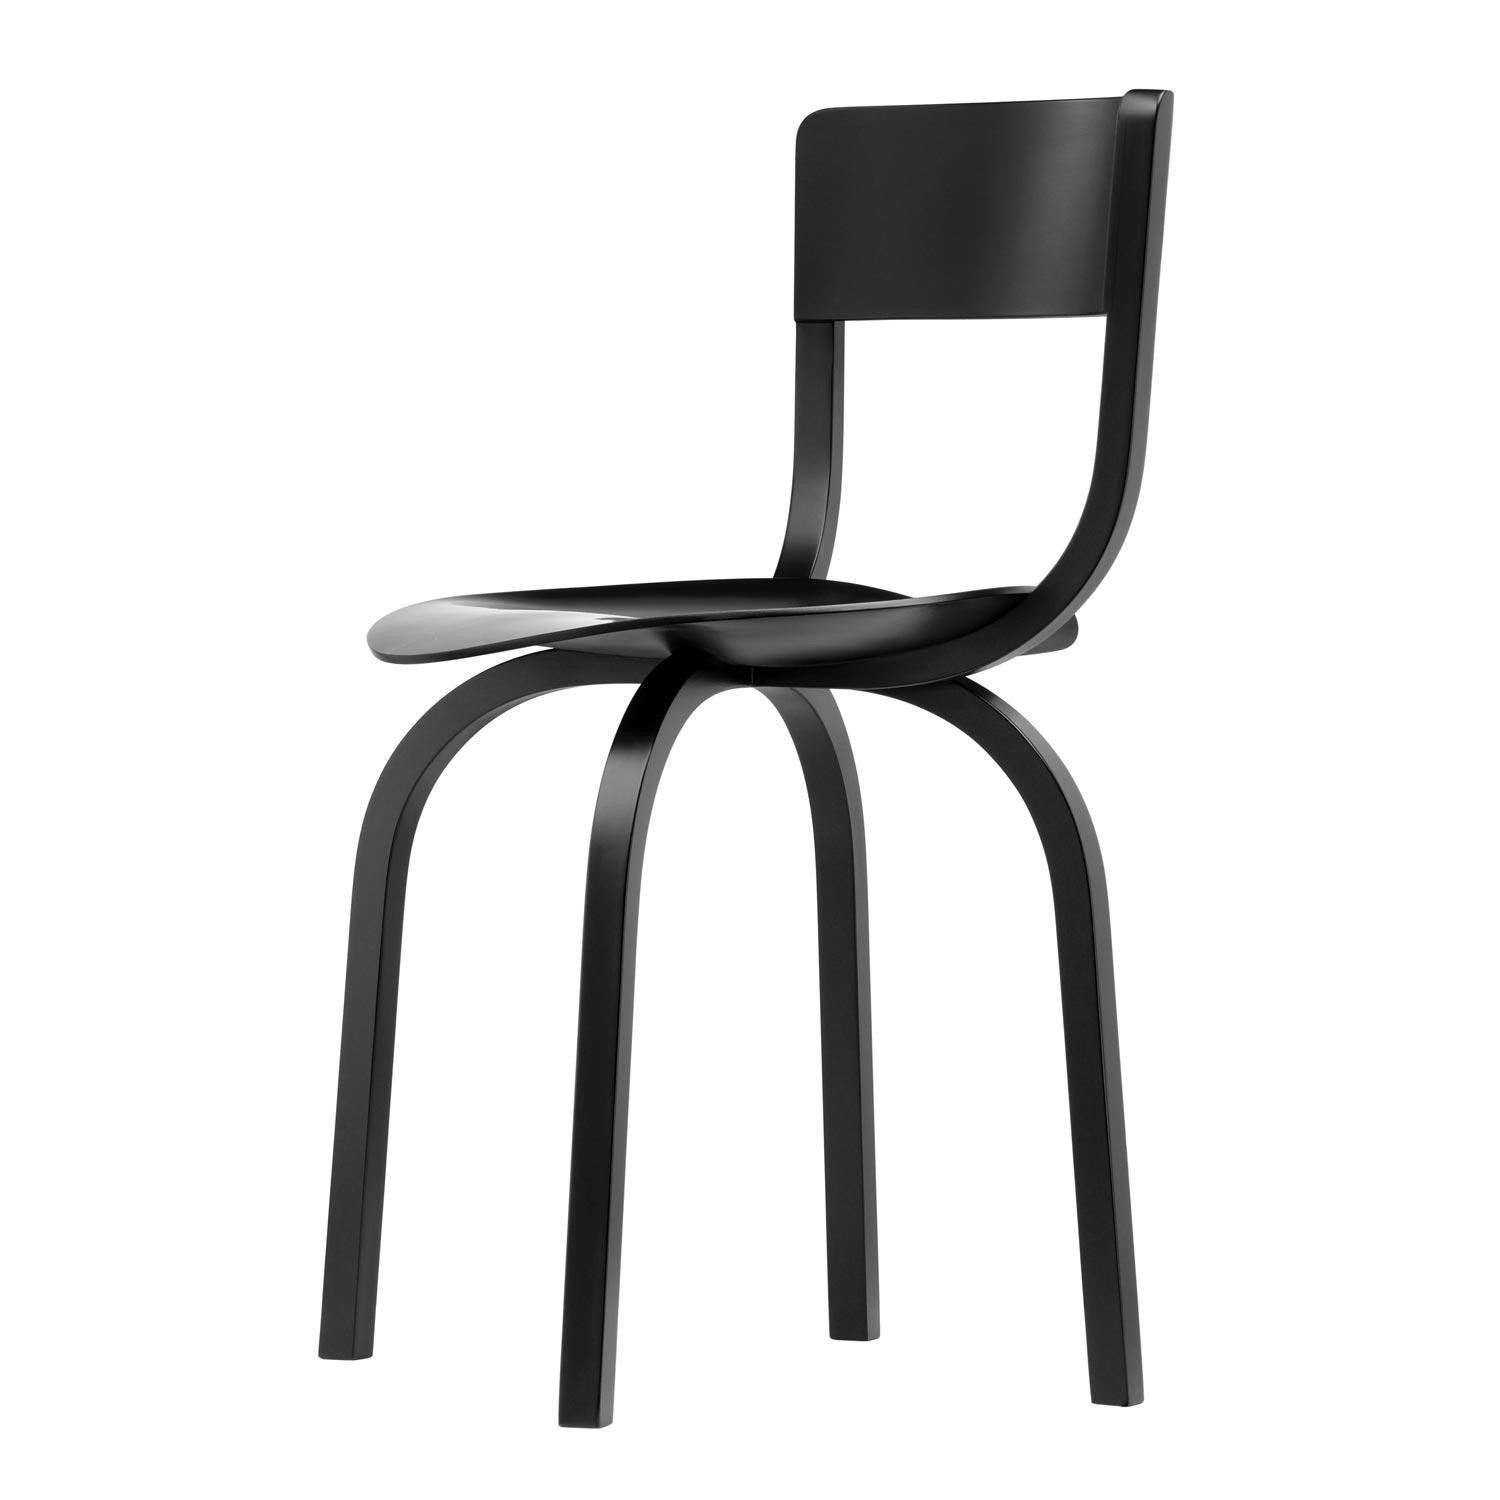 Tonet Stühle Thonet 404 Chair